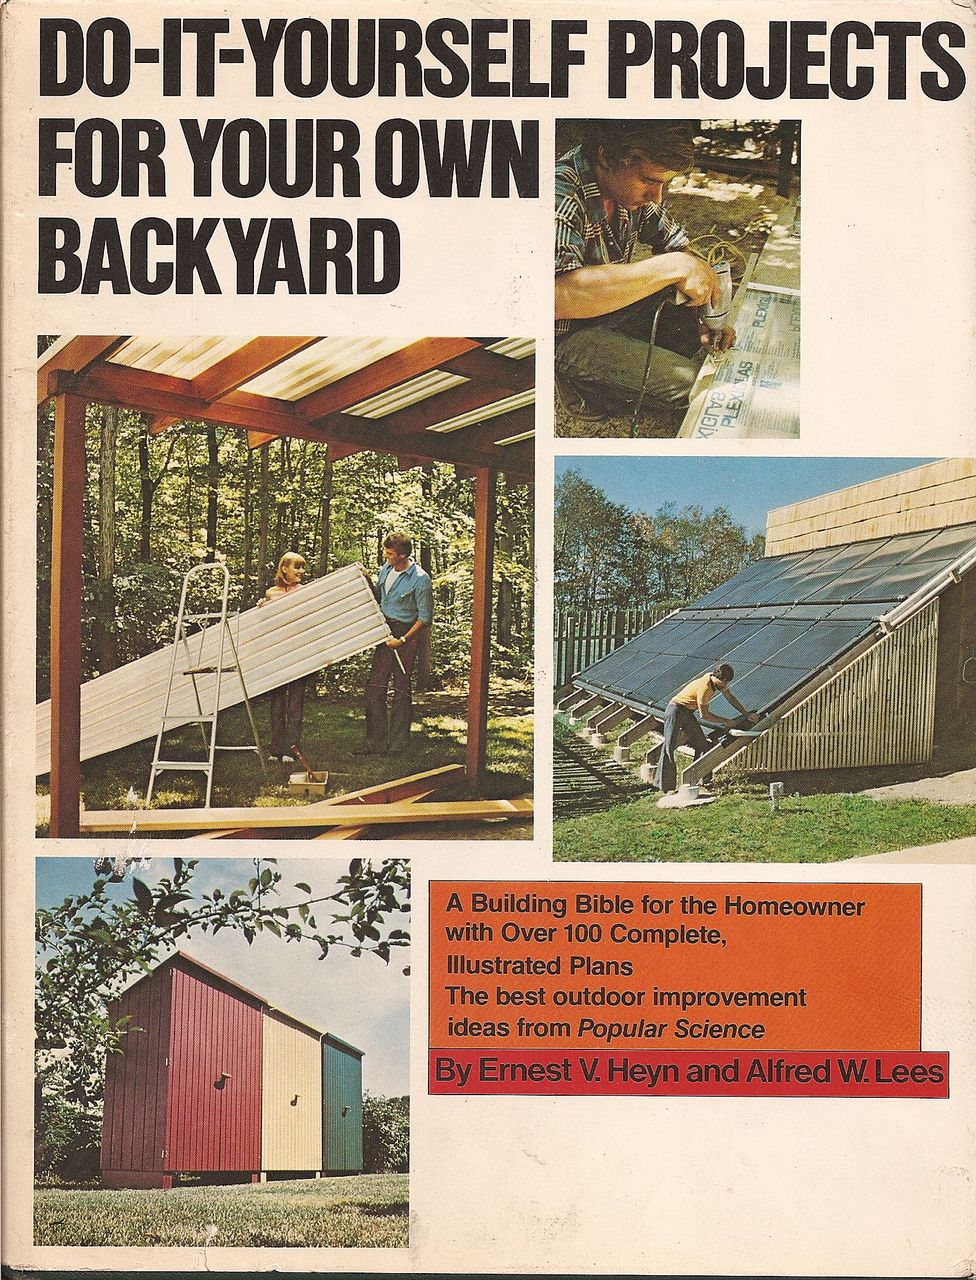 Backyard Do It Yourself Projects Specs Price Release